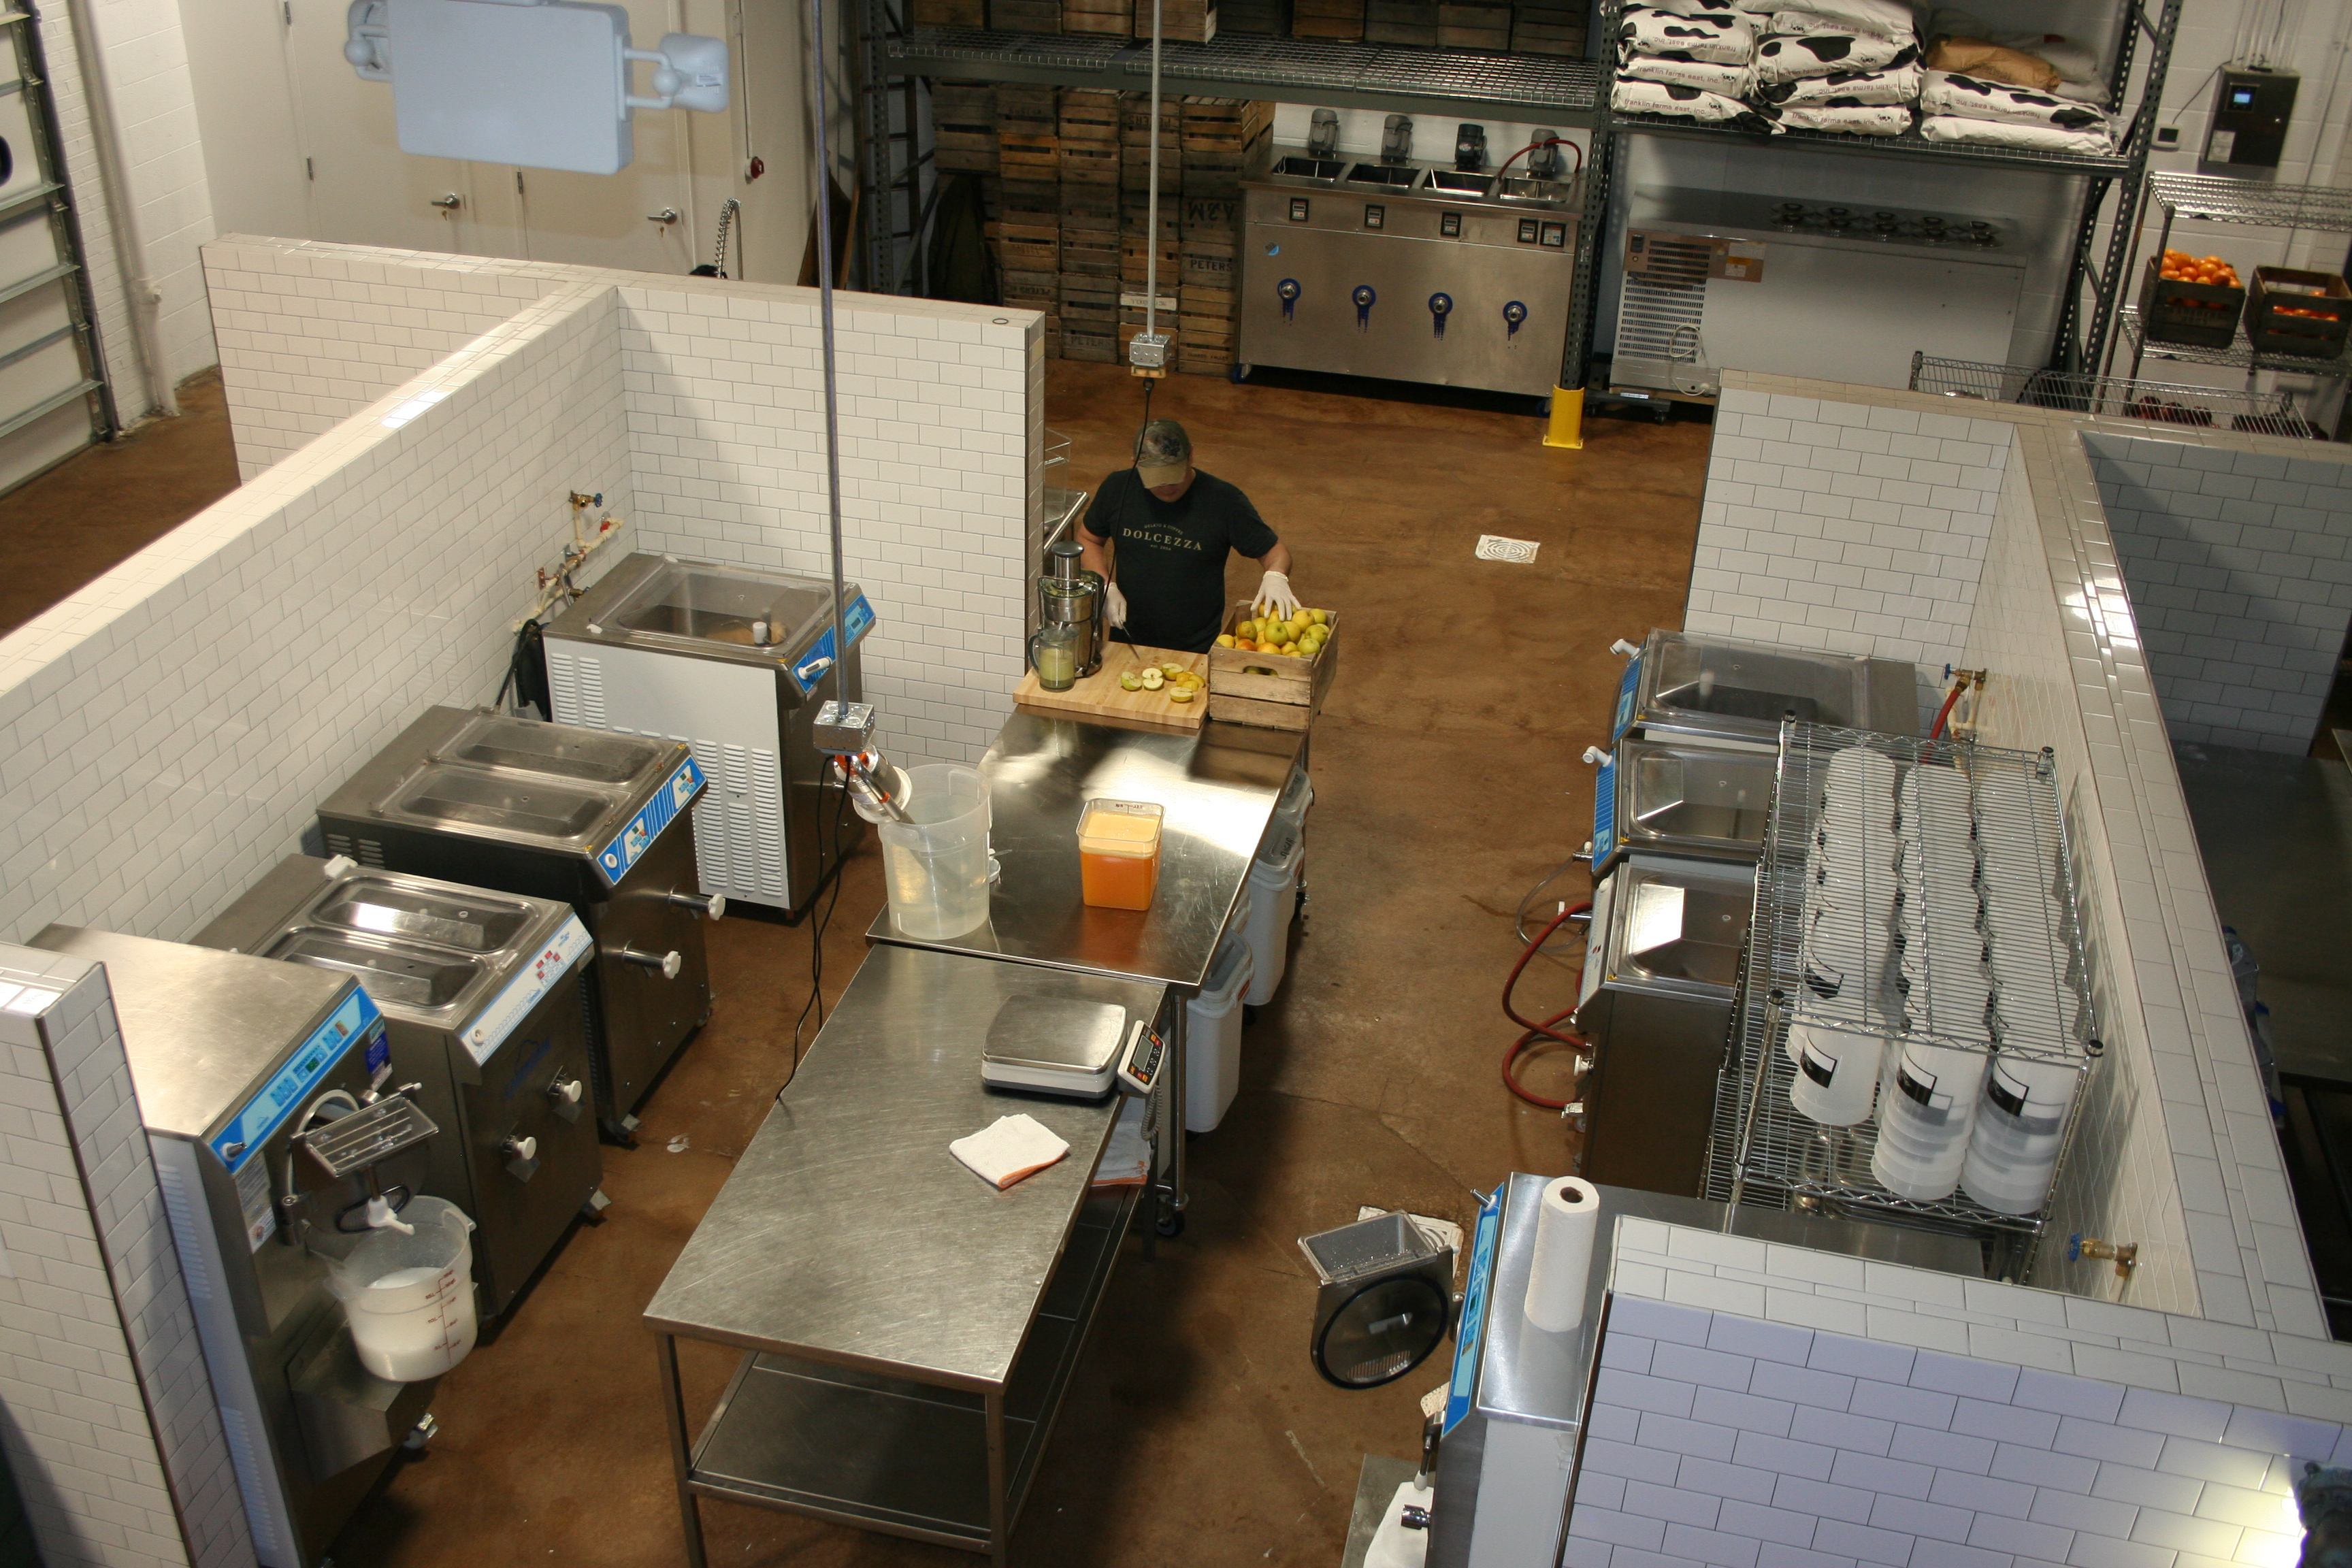 The Dolcezza gelato factory opens to the public this weekend. (Photo: Mark Heckathorn/DC on Heels)